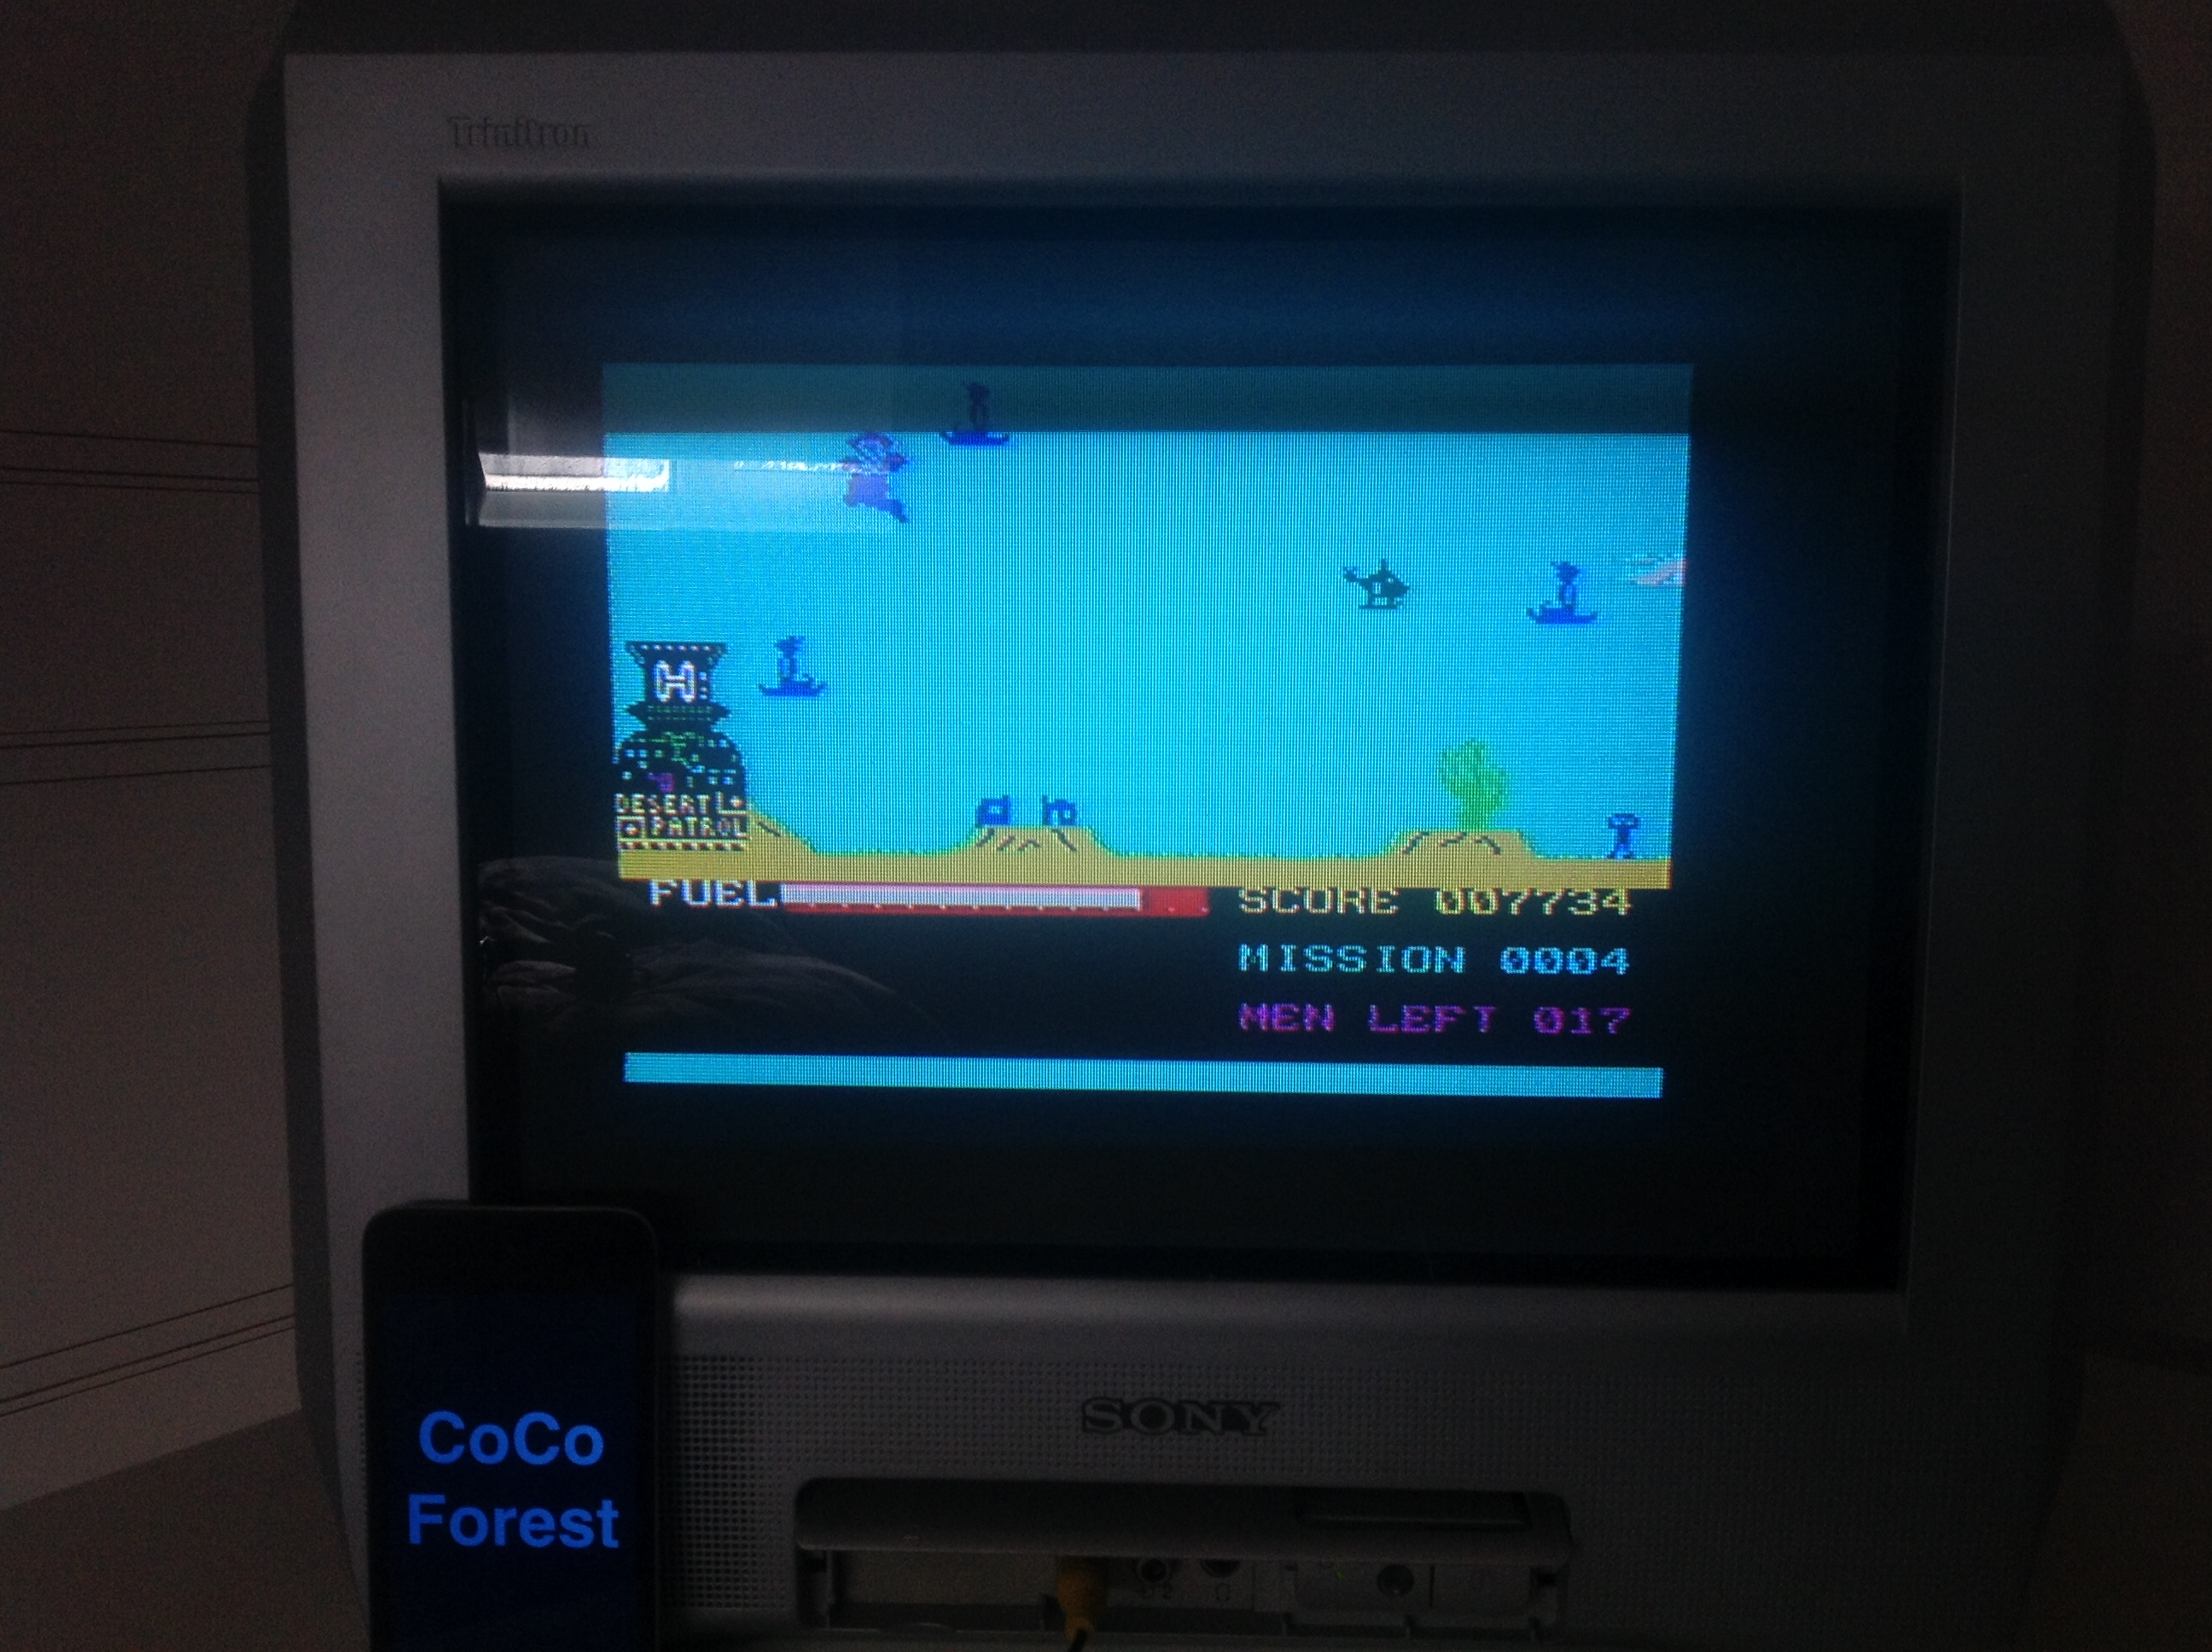 CoCoForest: Super Chopper (ZX Spectrum) 7,734 points on 2016-01-18 06:55:27